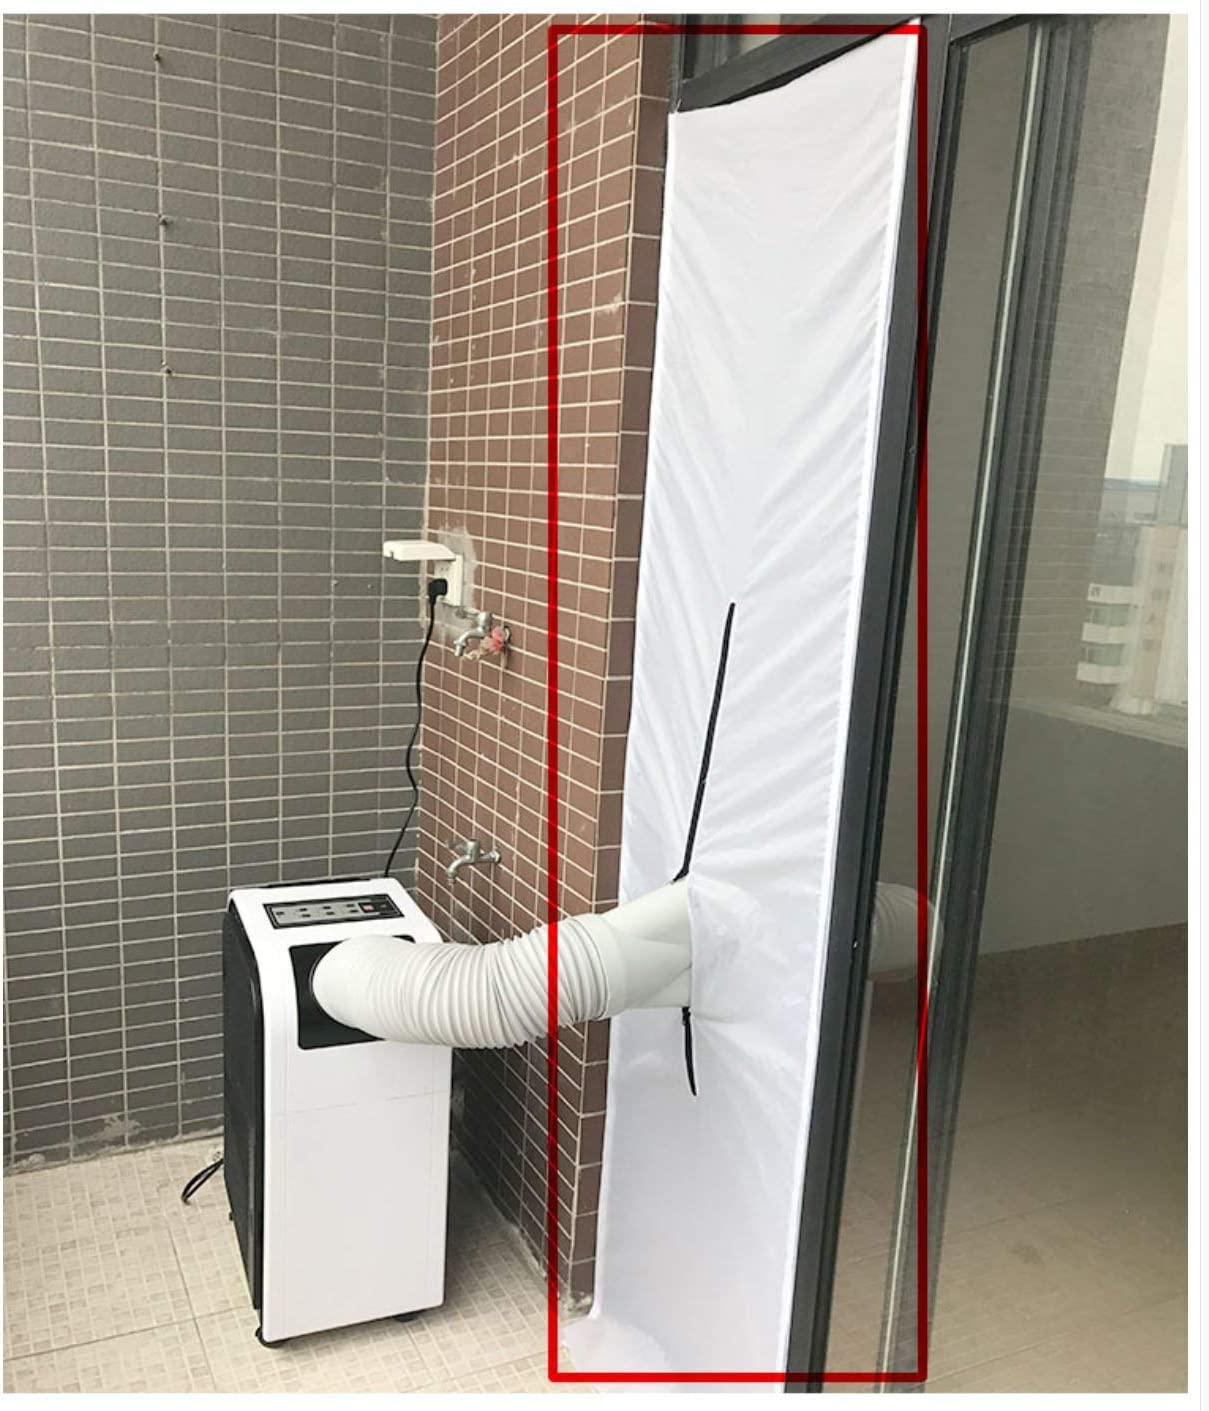 JIANZHENKEJI 200 x 50 cm Zipper Screen Door Seal for Portable Air Conditioner and Tumble Dryer   Works with Every Mobile Air Conditioning Use It On A Left and Right Sliding Door